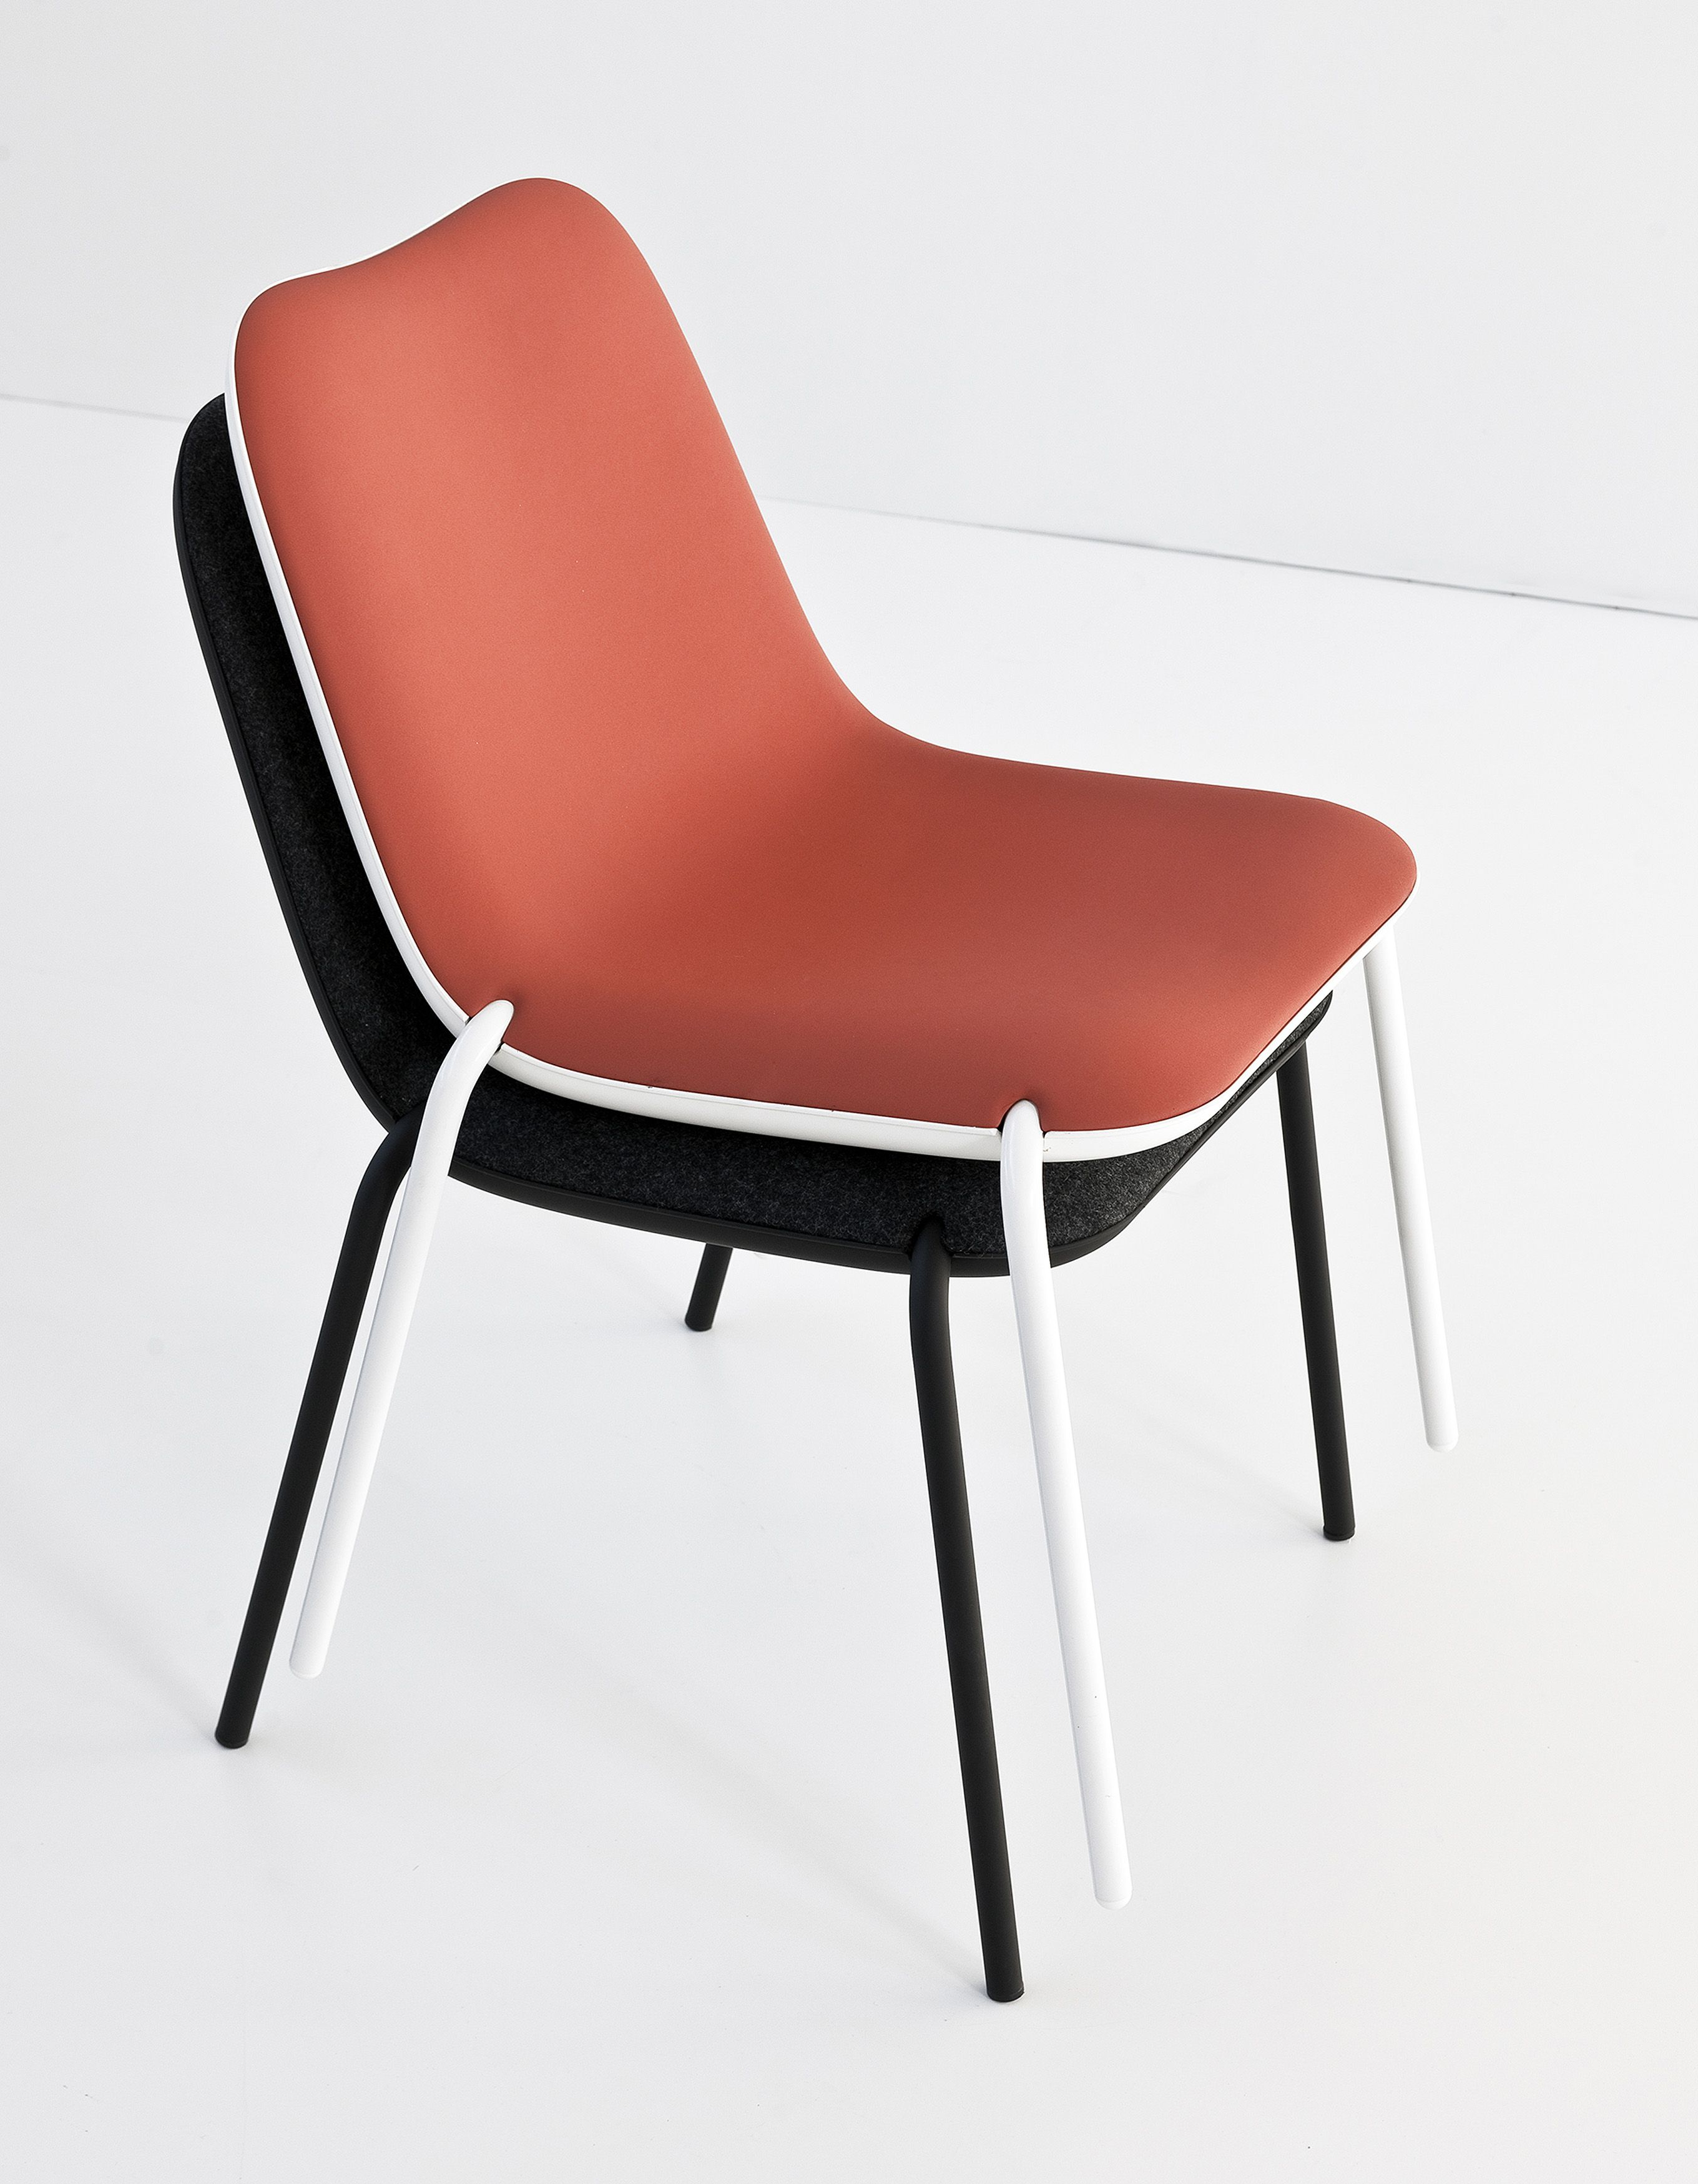 New versions of Boum, the chair that has recently turned 10 years old. To…